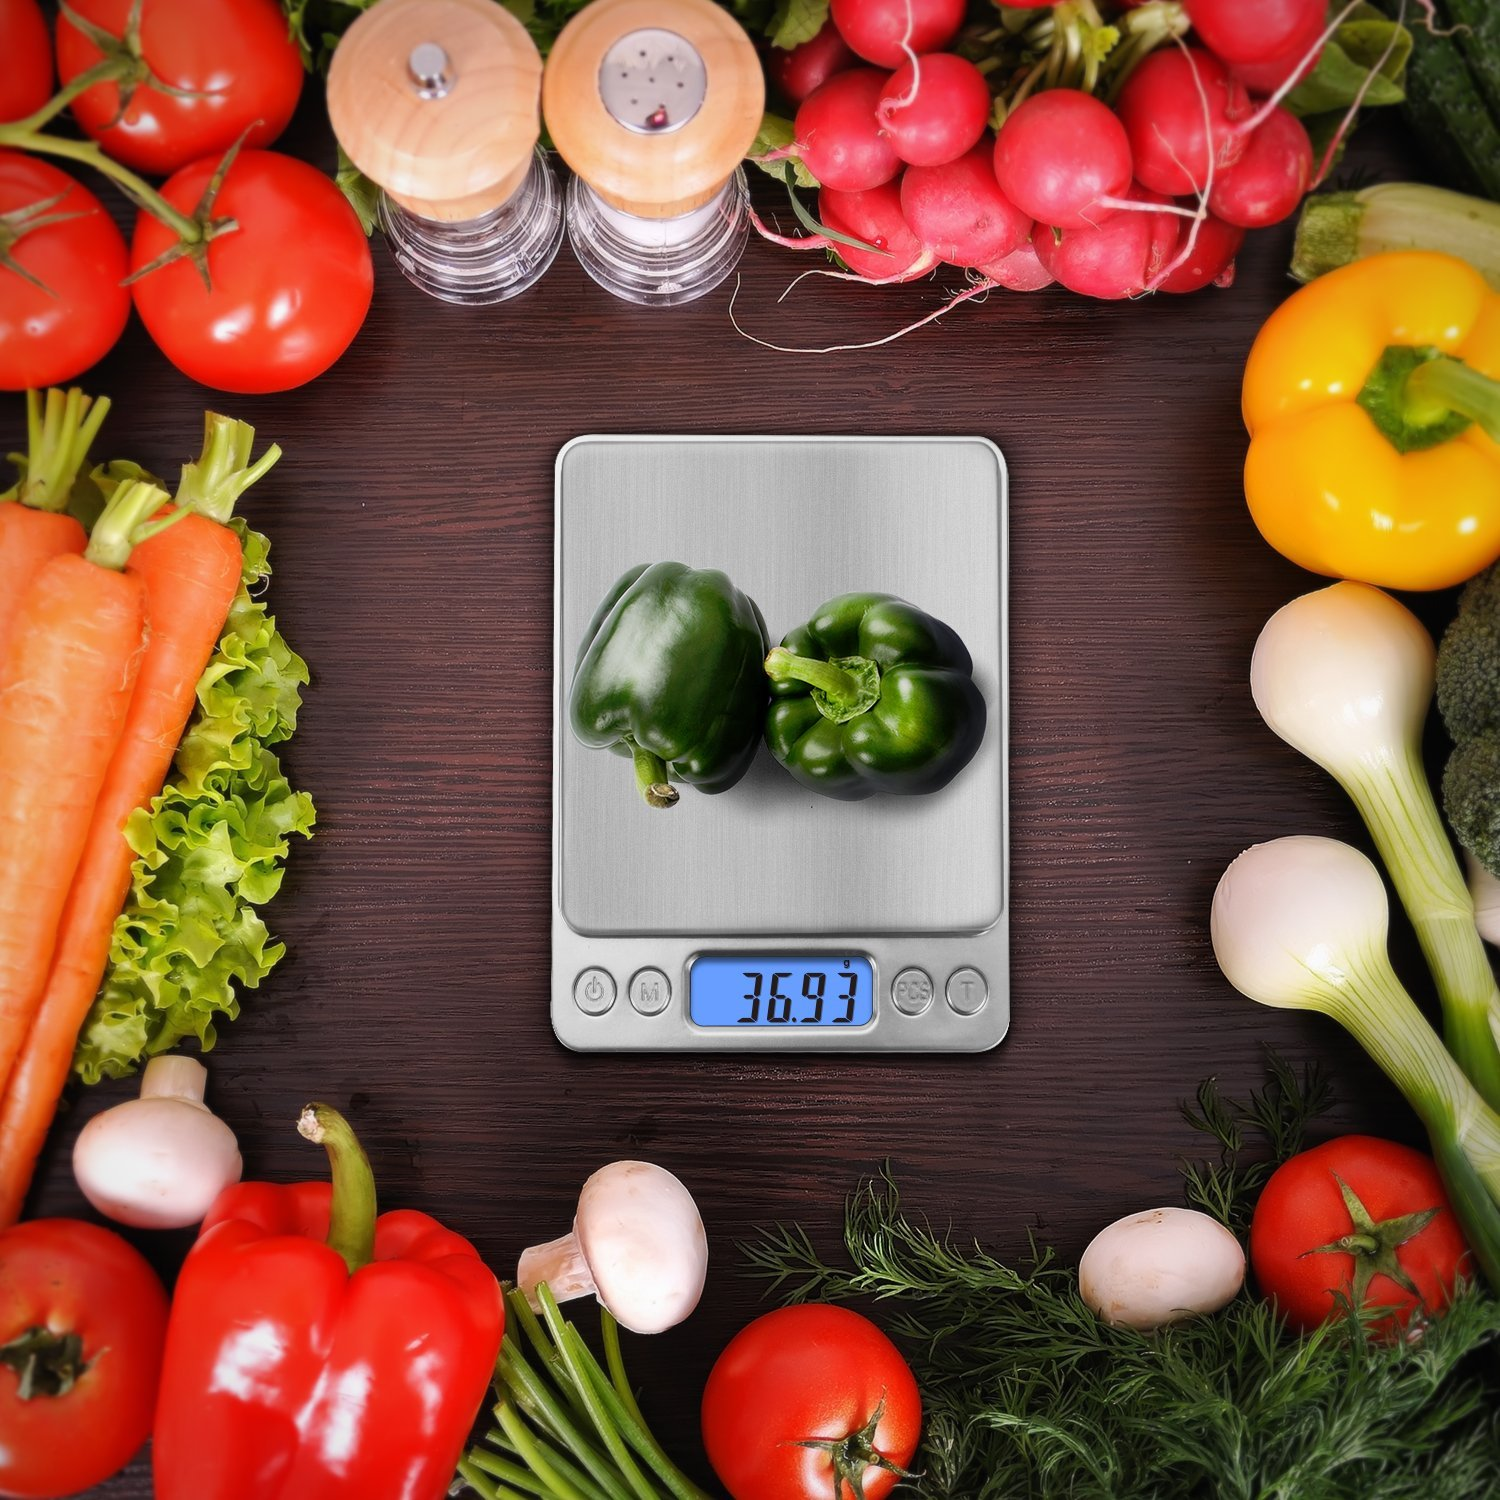 Next-Shine 500g Digital Weight Scale with Tare Function, Stainless Steel